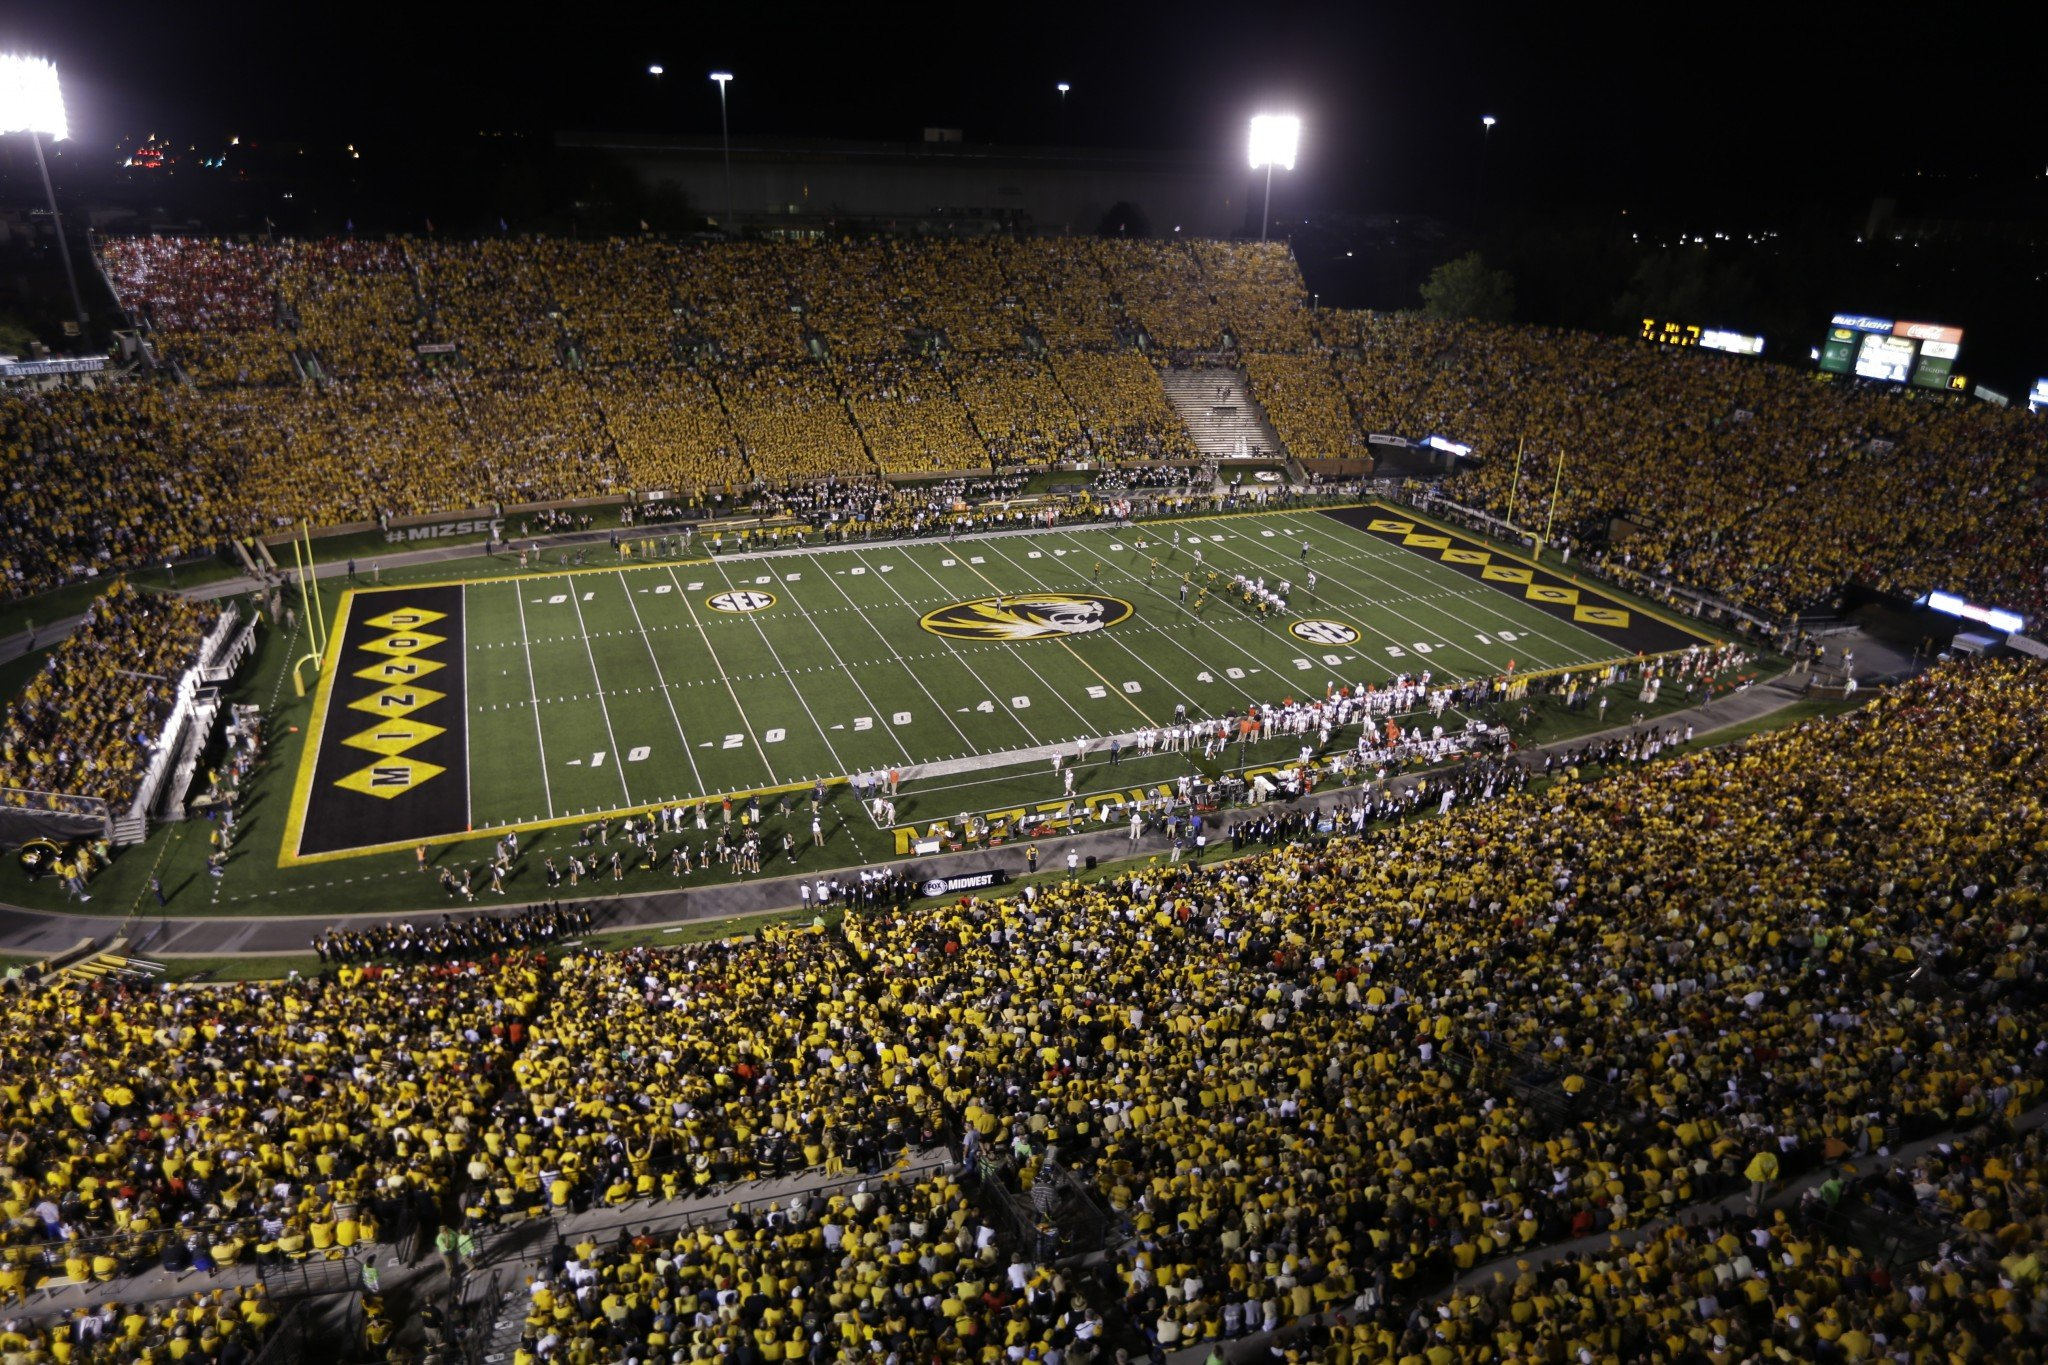 Missouri running back suspended after stealing arrest